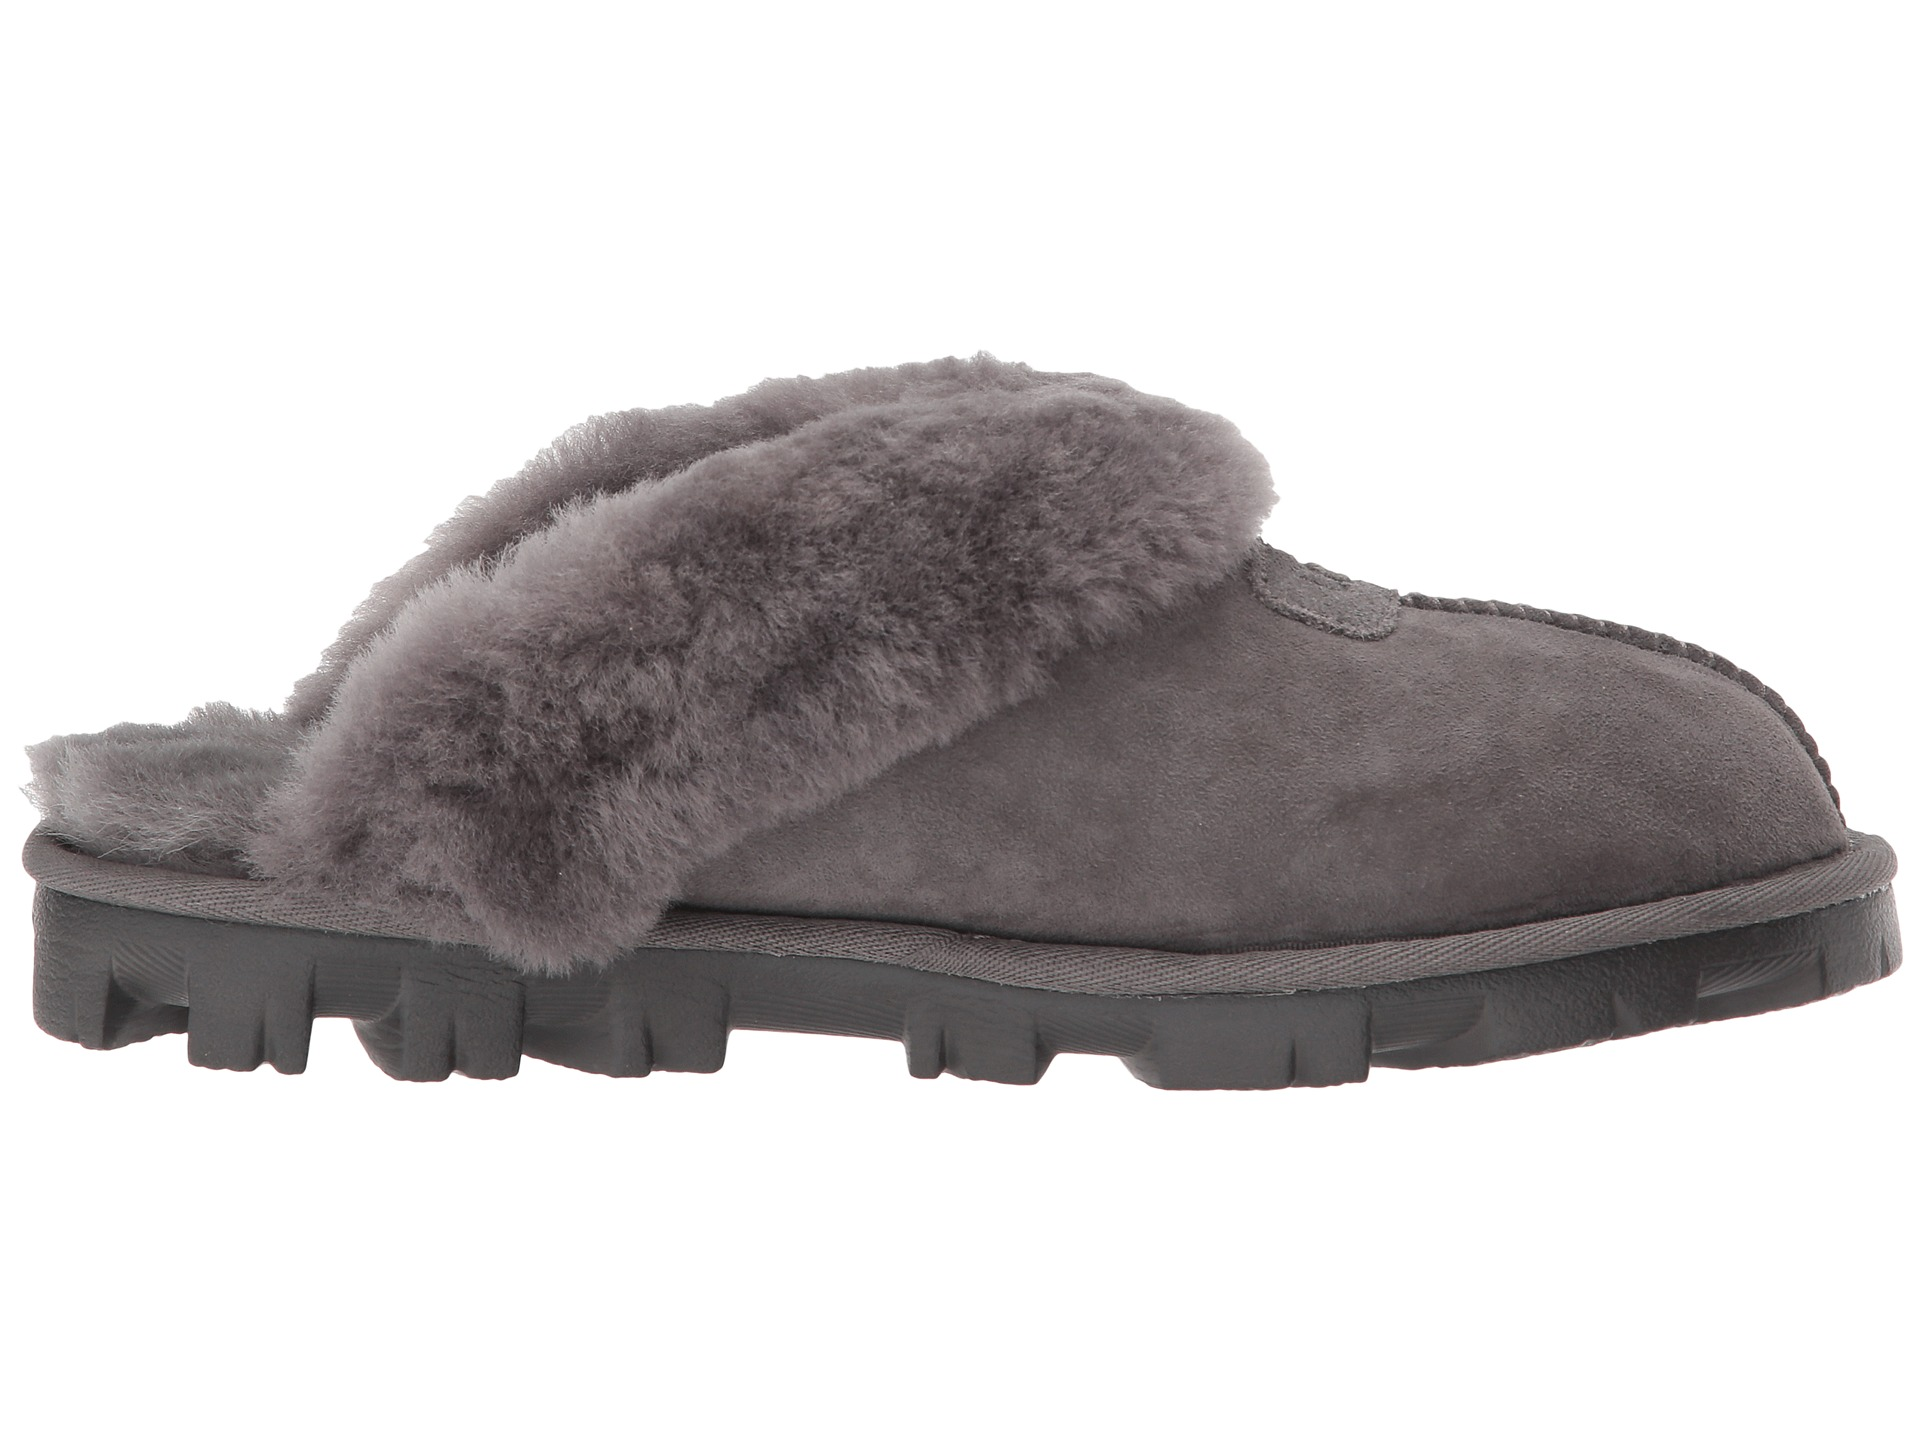 4307393b69e Zappos Ugg Coquette Slippers - cheap watches mgc-gas.com